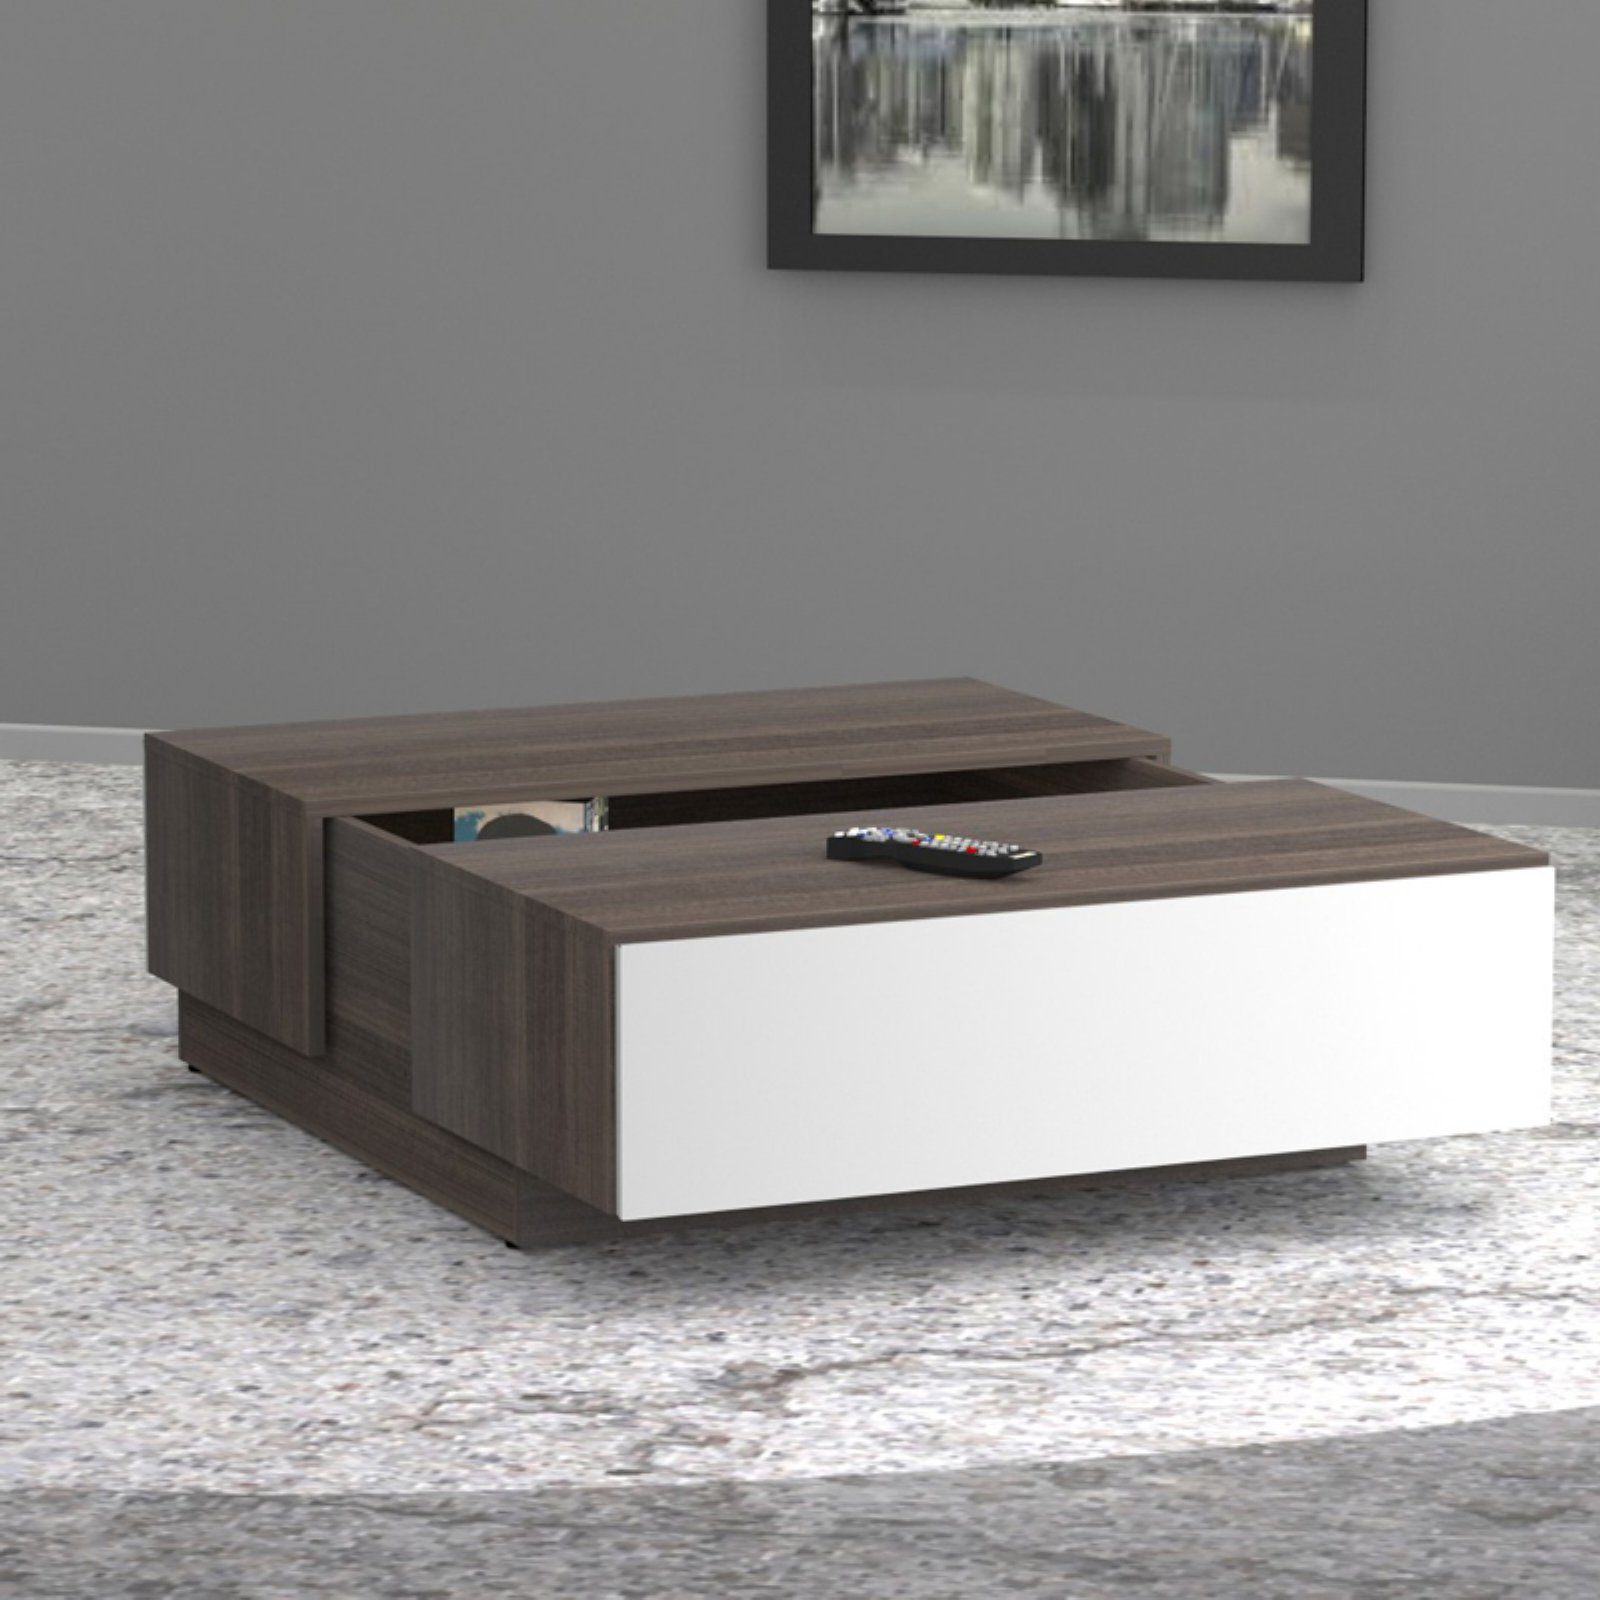 Popular Nexera Allure Coffee Table With Hidden Storage, White/ebony Intended For Allure Cocktail Tables (View 5 of 20)